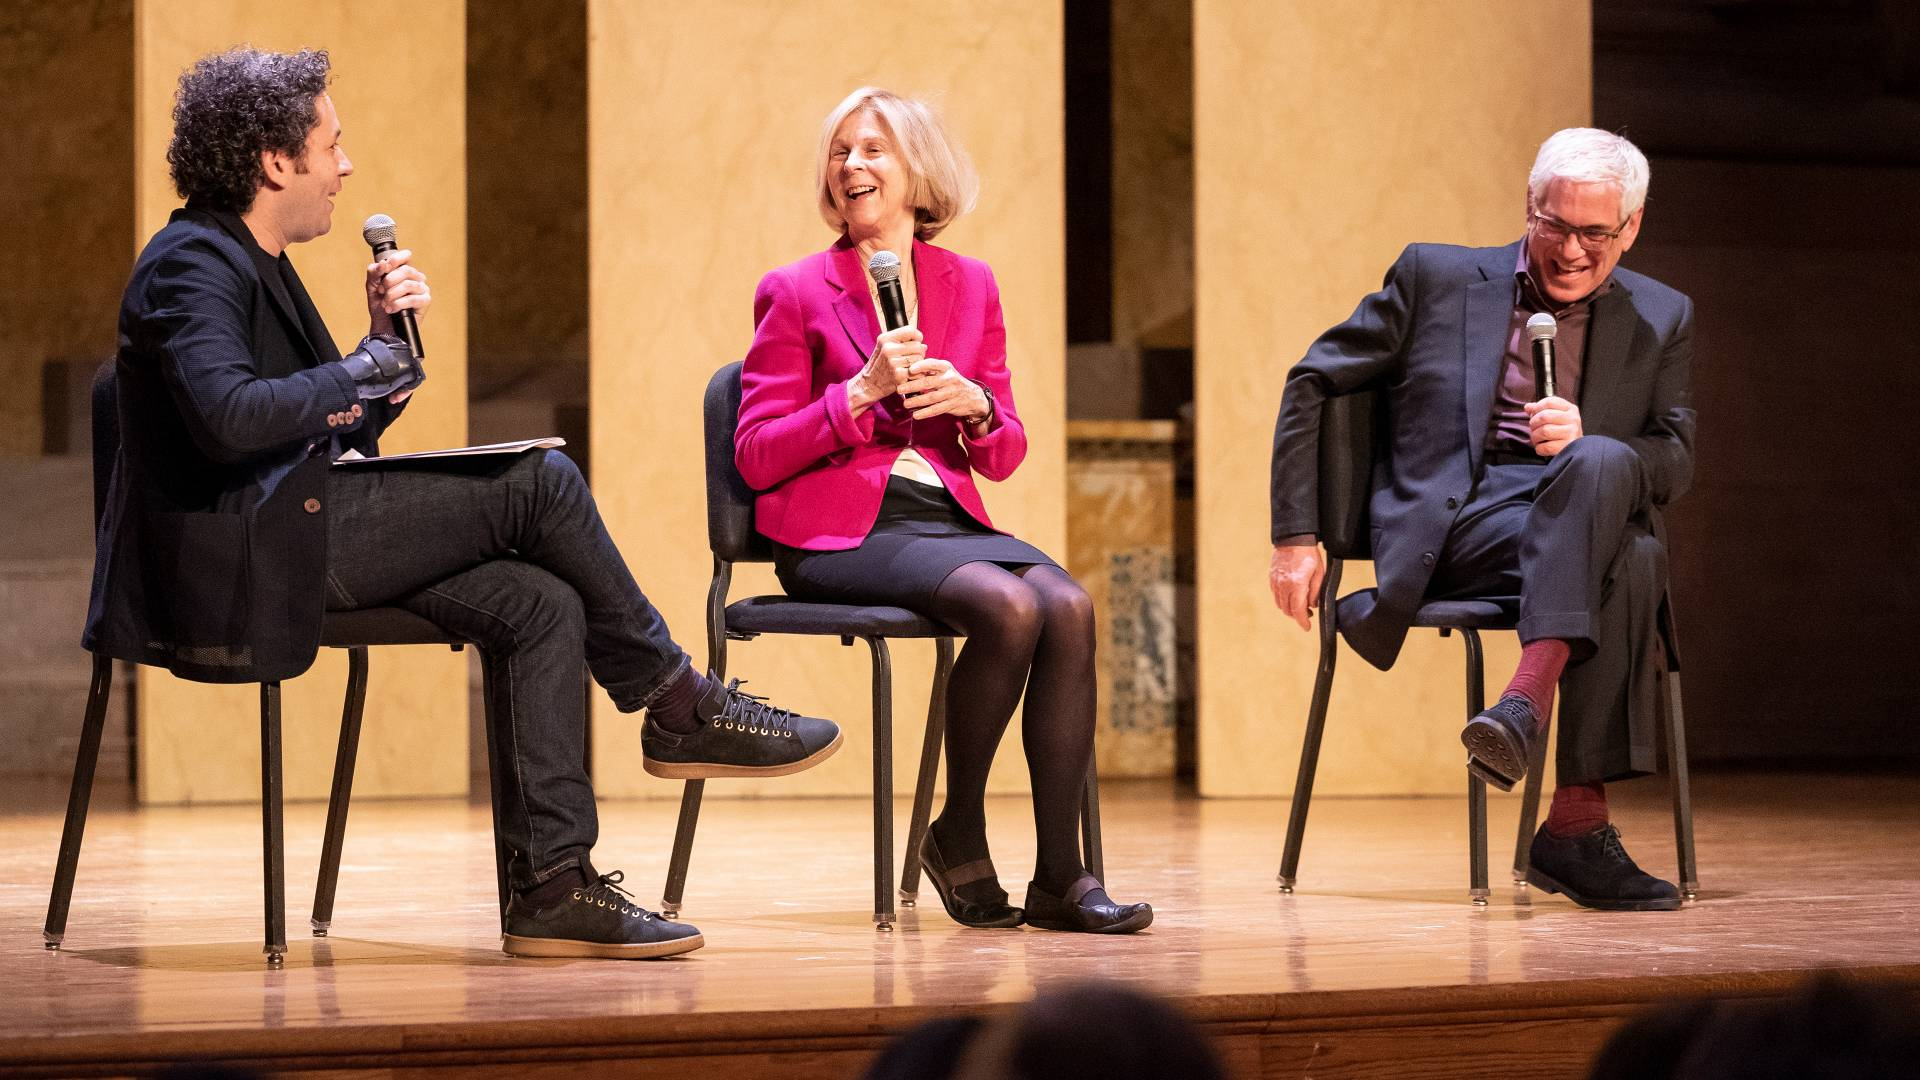 Gustavo Dudamel, Elaine Pagels and Alexander Nehamas sitting on stage